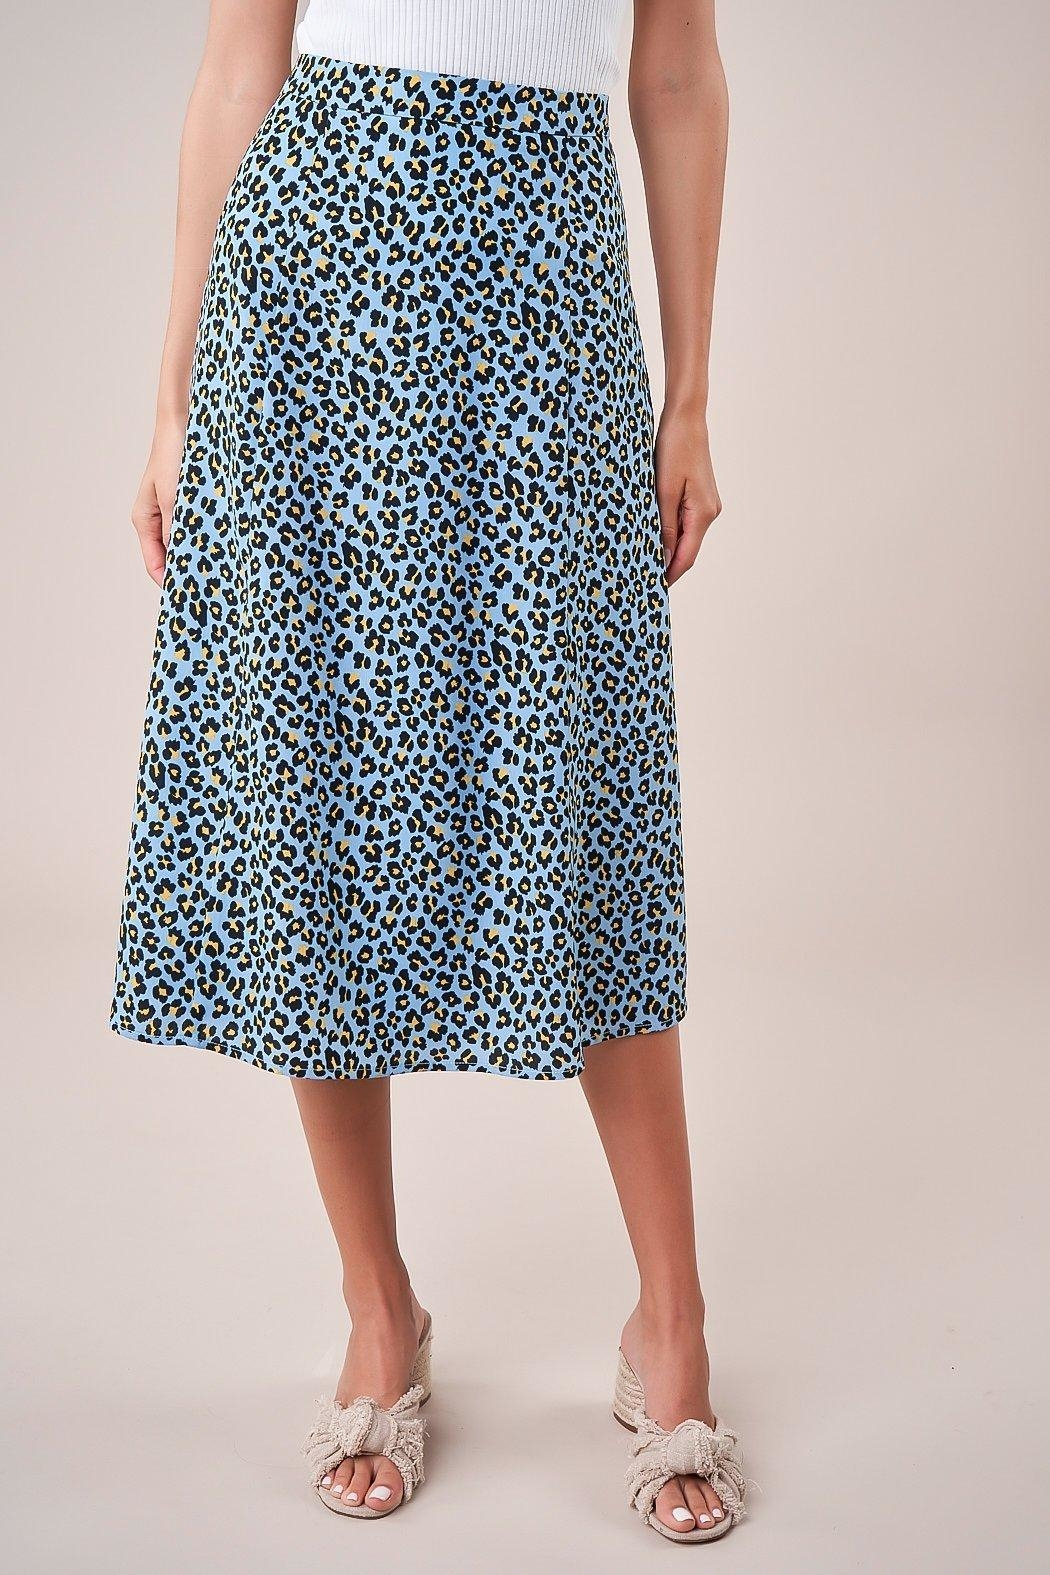 Sugarlips Leopard Midi Skirt - Side Cropped Image